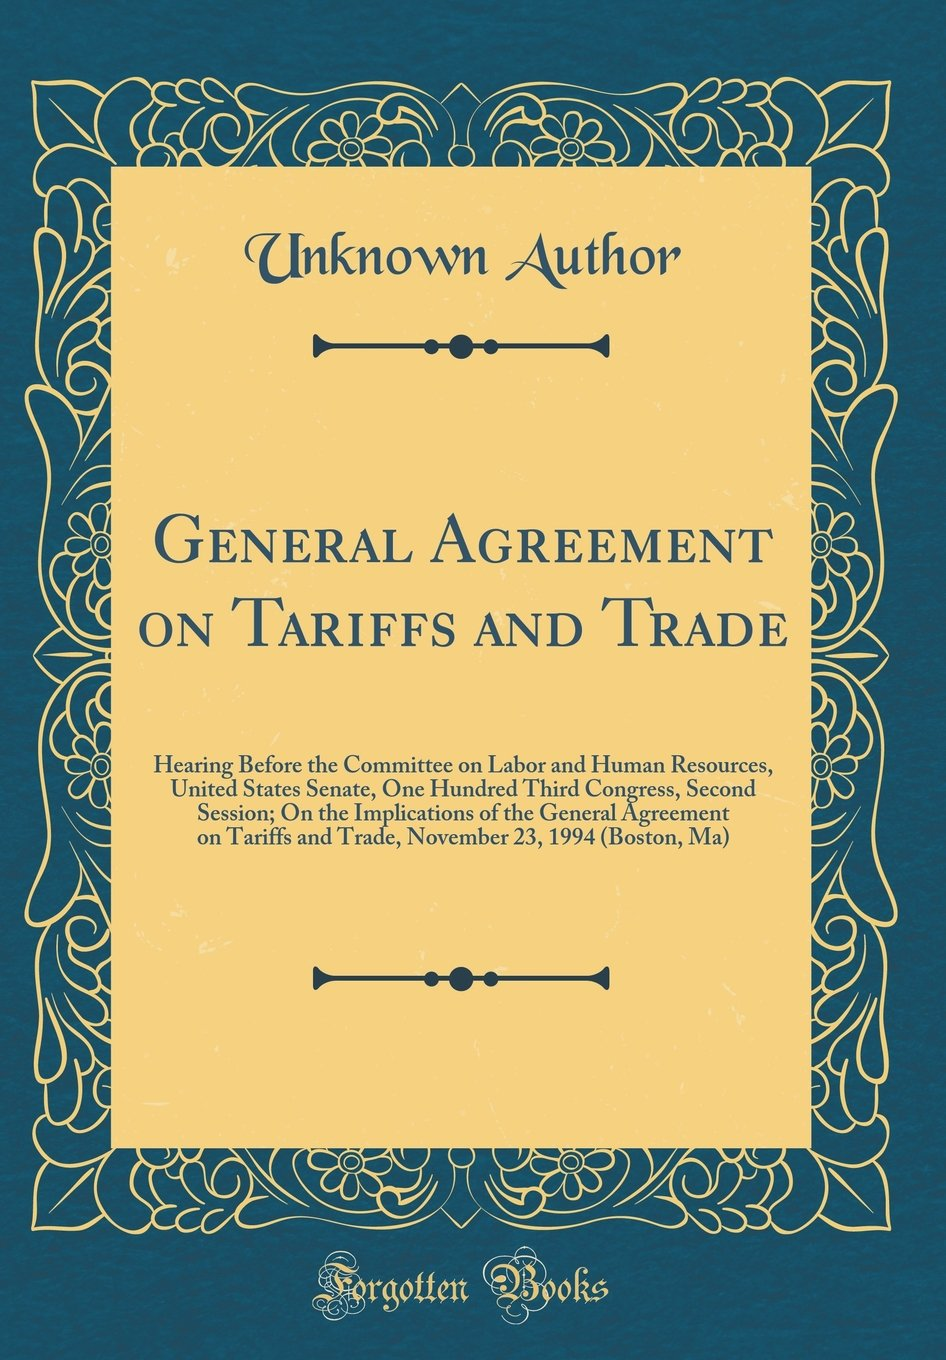 General Agreement On Tariffs And Trade Hearing Before The Committee